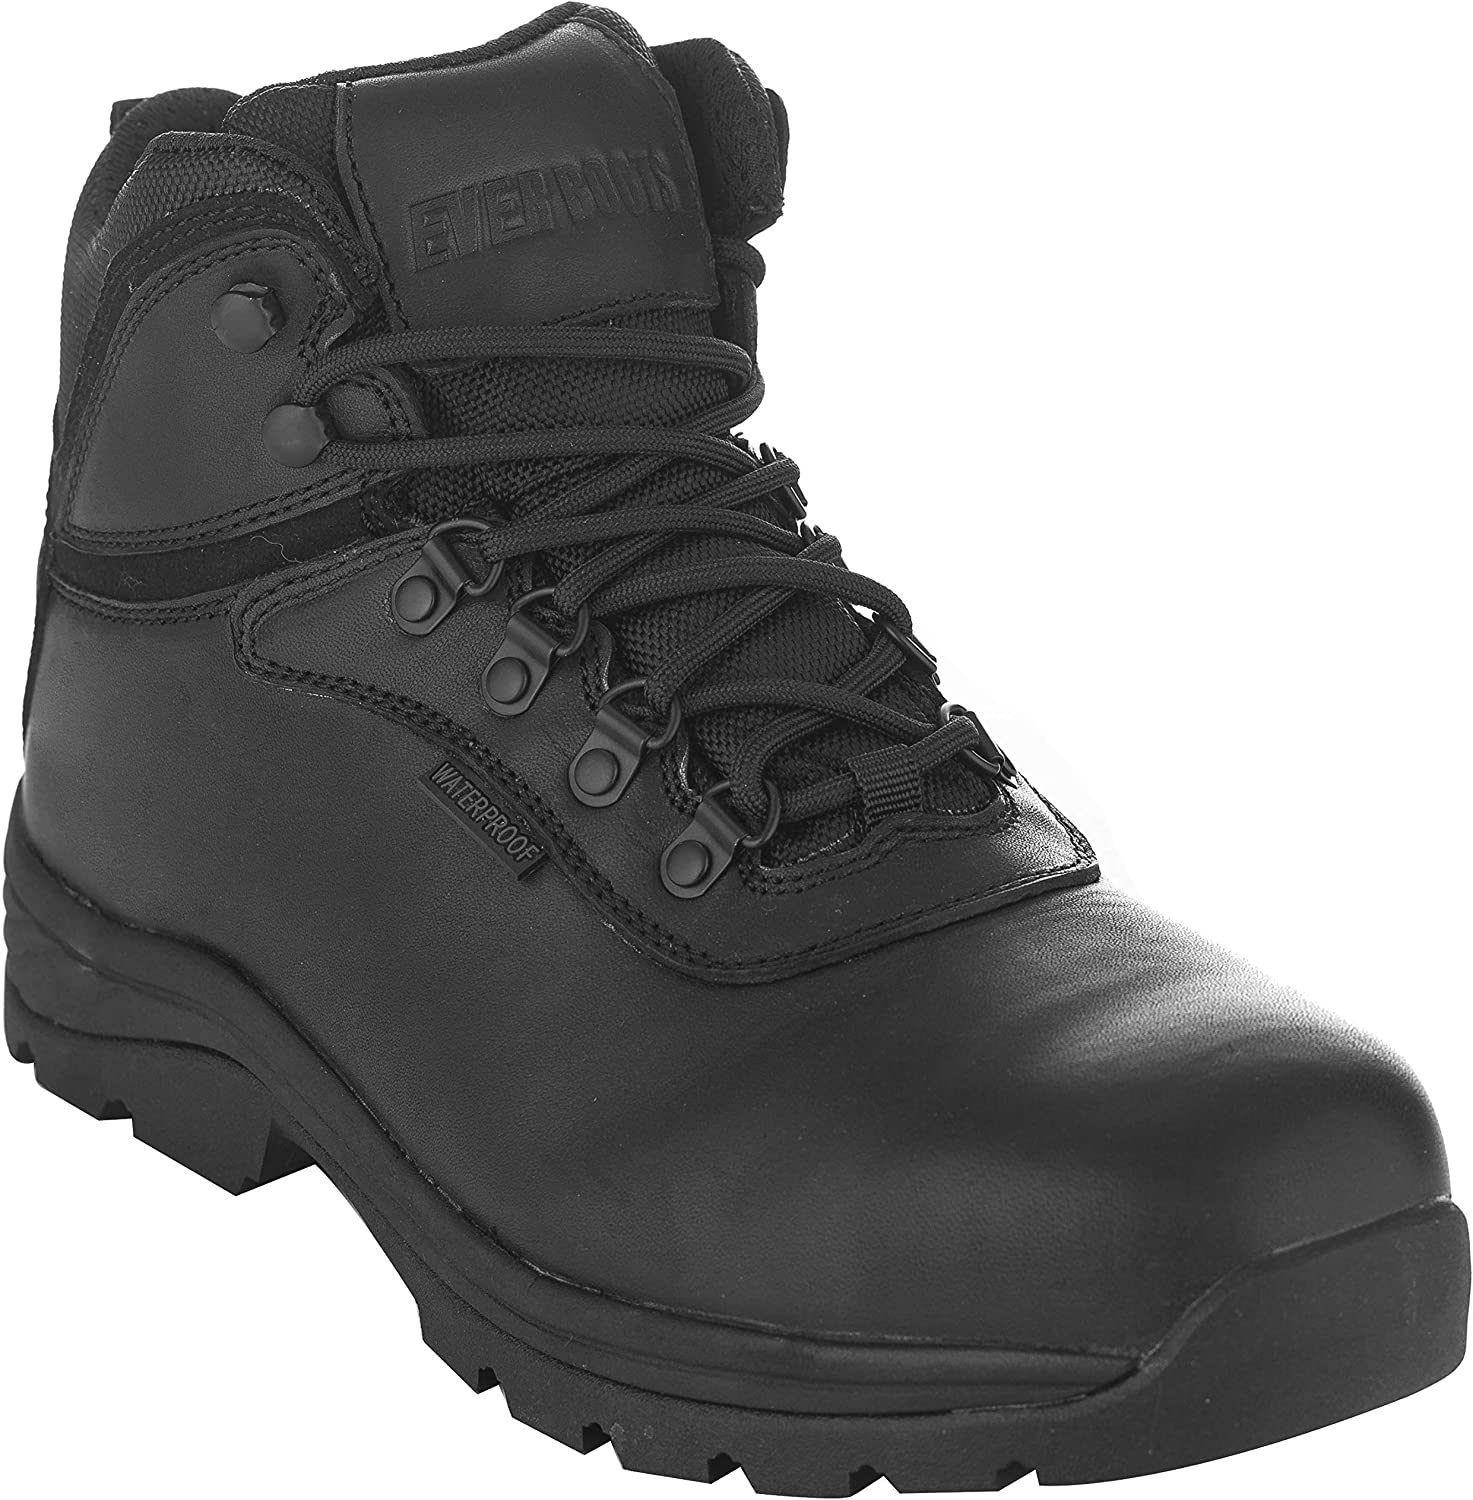 EVER BOOTS Men's Steel Toe Waterproof Industrial Work Boot